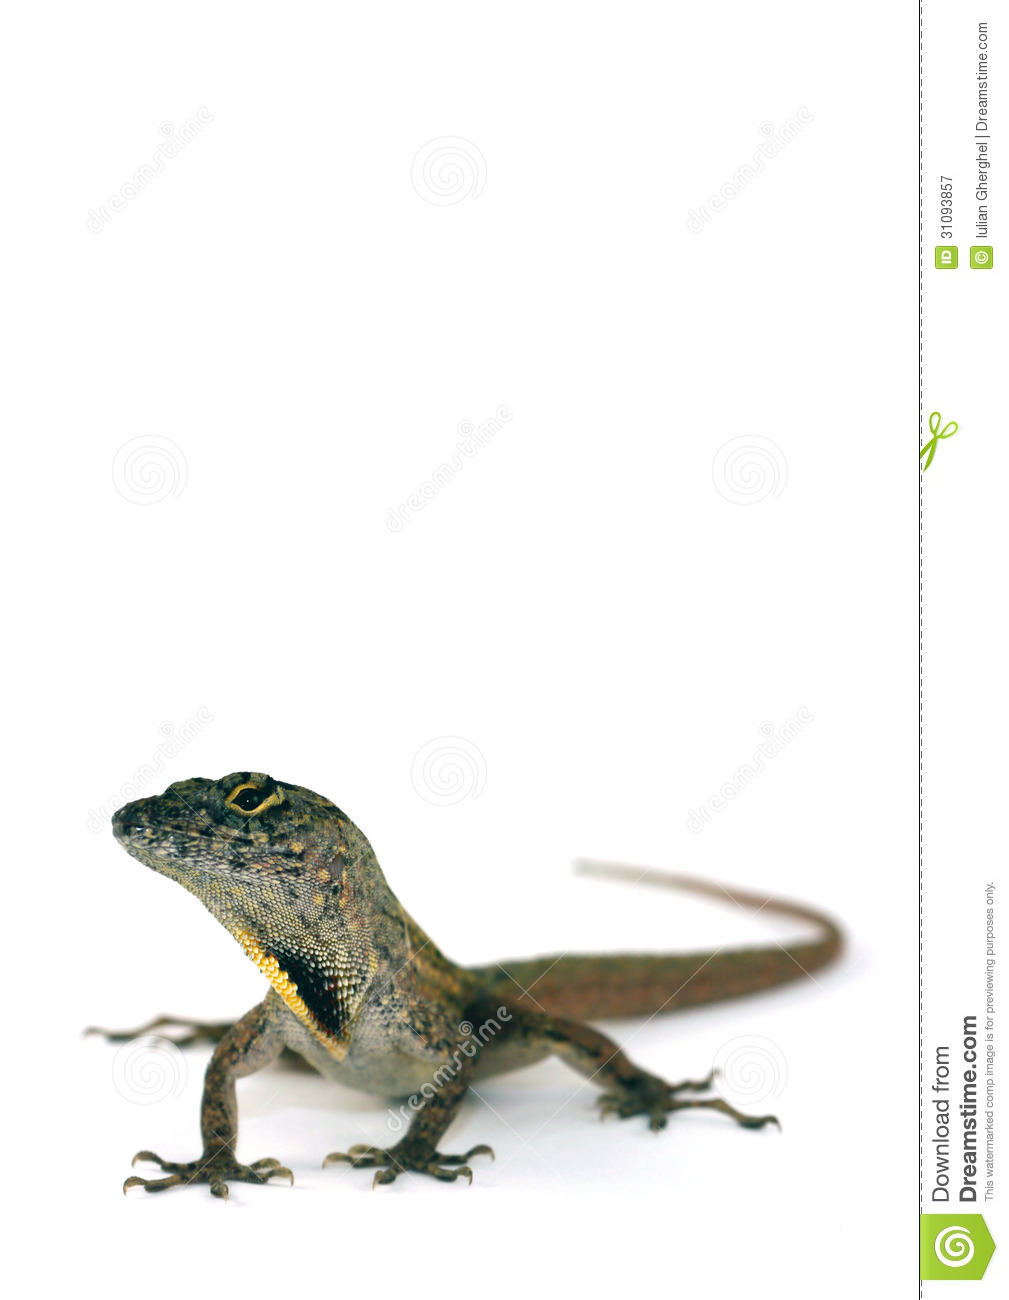 Brown Anole Lizard Royalty Free Stock Photography.